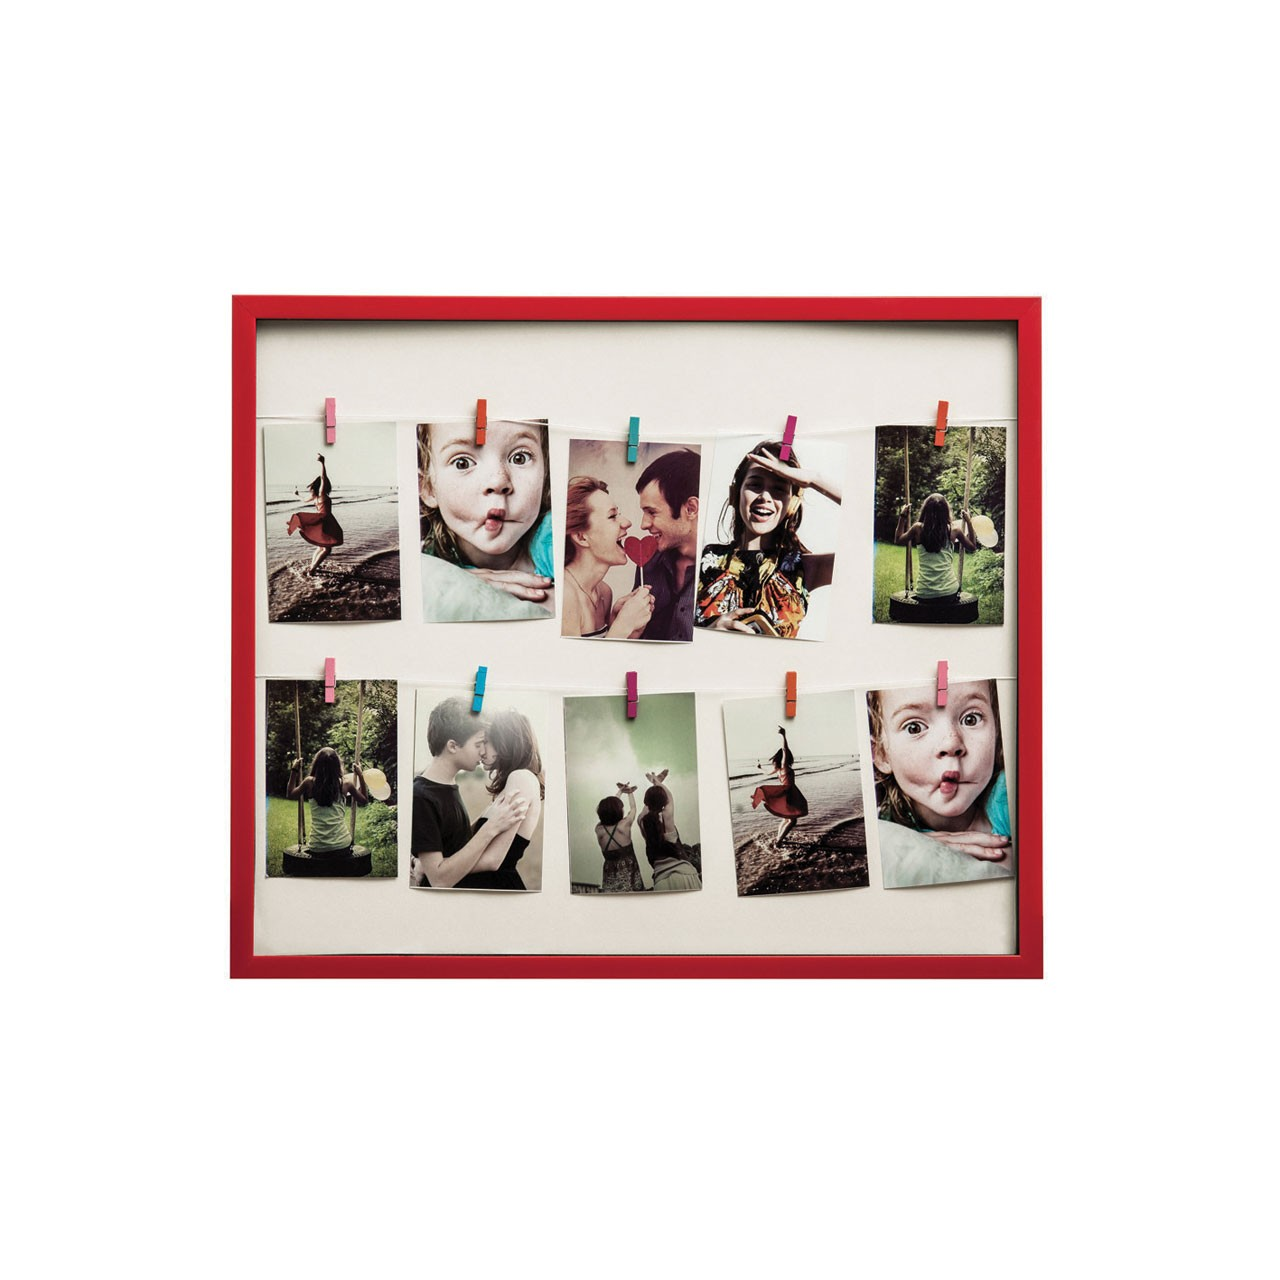 Prime Furnishing 10 Peg Washing Line Plastic Photo Frame - Red